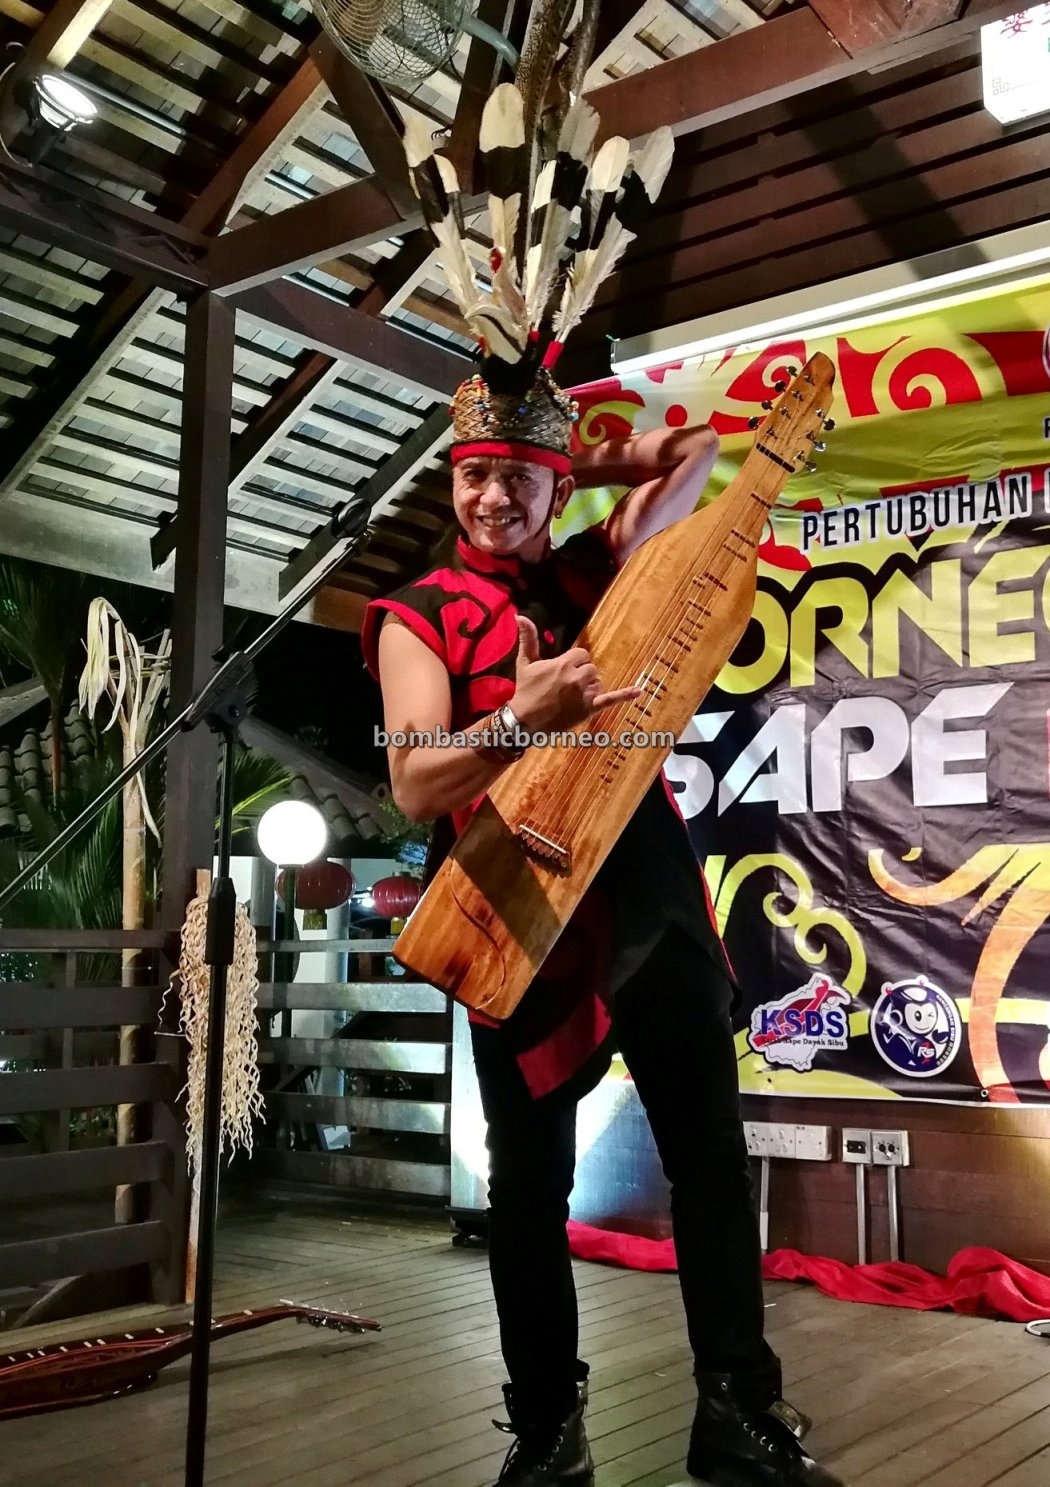 guitar, Borneo Youth Sape Festival, culture, event, native, tribe, indigenous, Sarawak, One Malaysia Cultural Village, Tourism, tourist attraction, travel guide, cross border, 婆罗洲原住民吉他, 达雅沙贝音乐